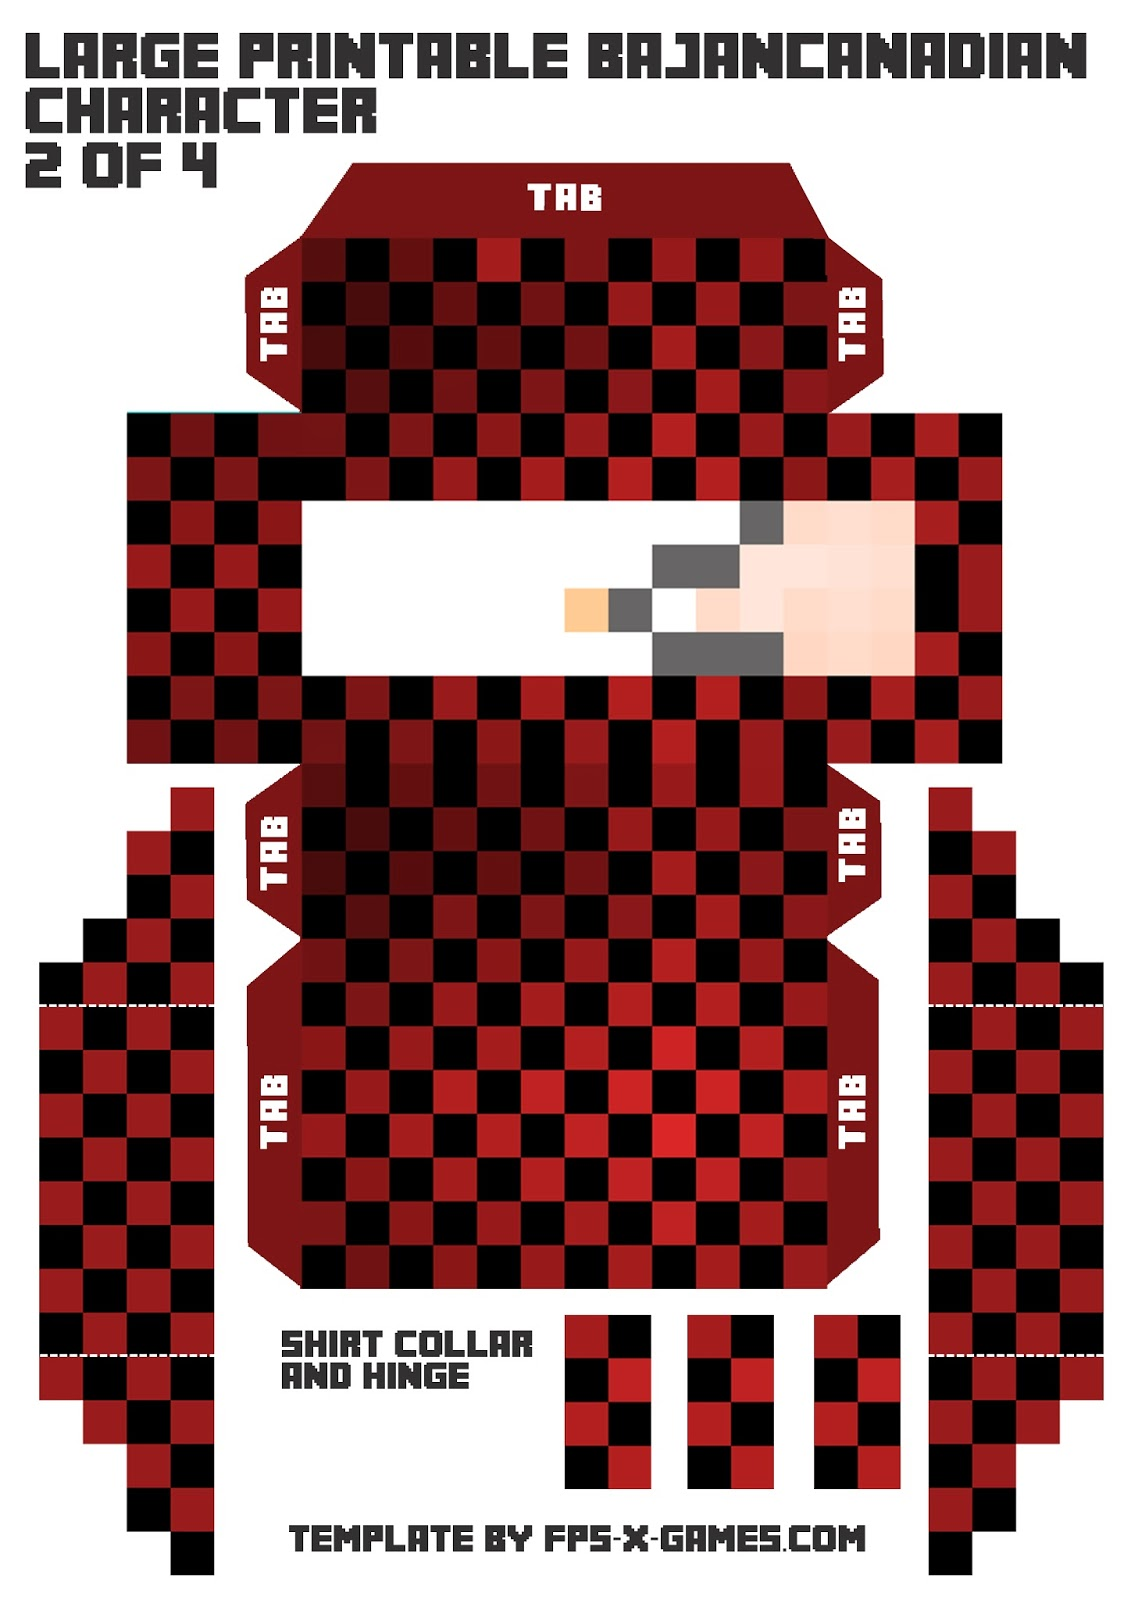 Printable BajanCanadian Minecraft Character 2 of 4